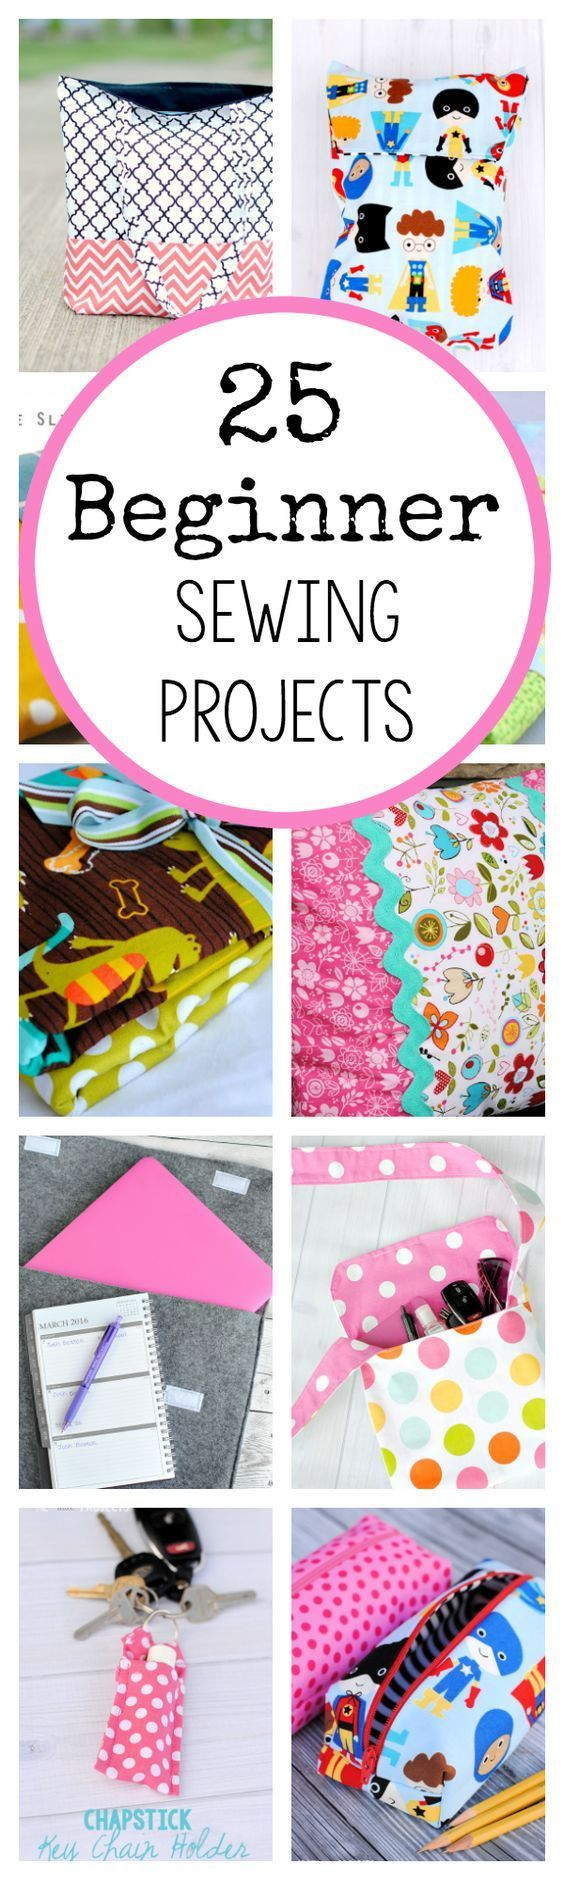 So we've roundup 25 Sewing Projects made easy for beginners like you. This list will help you get great ideas for your sewing projects. Take a tour now to help you get started.